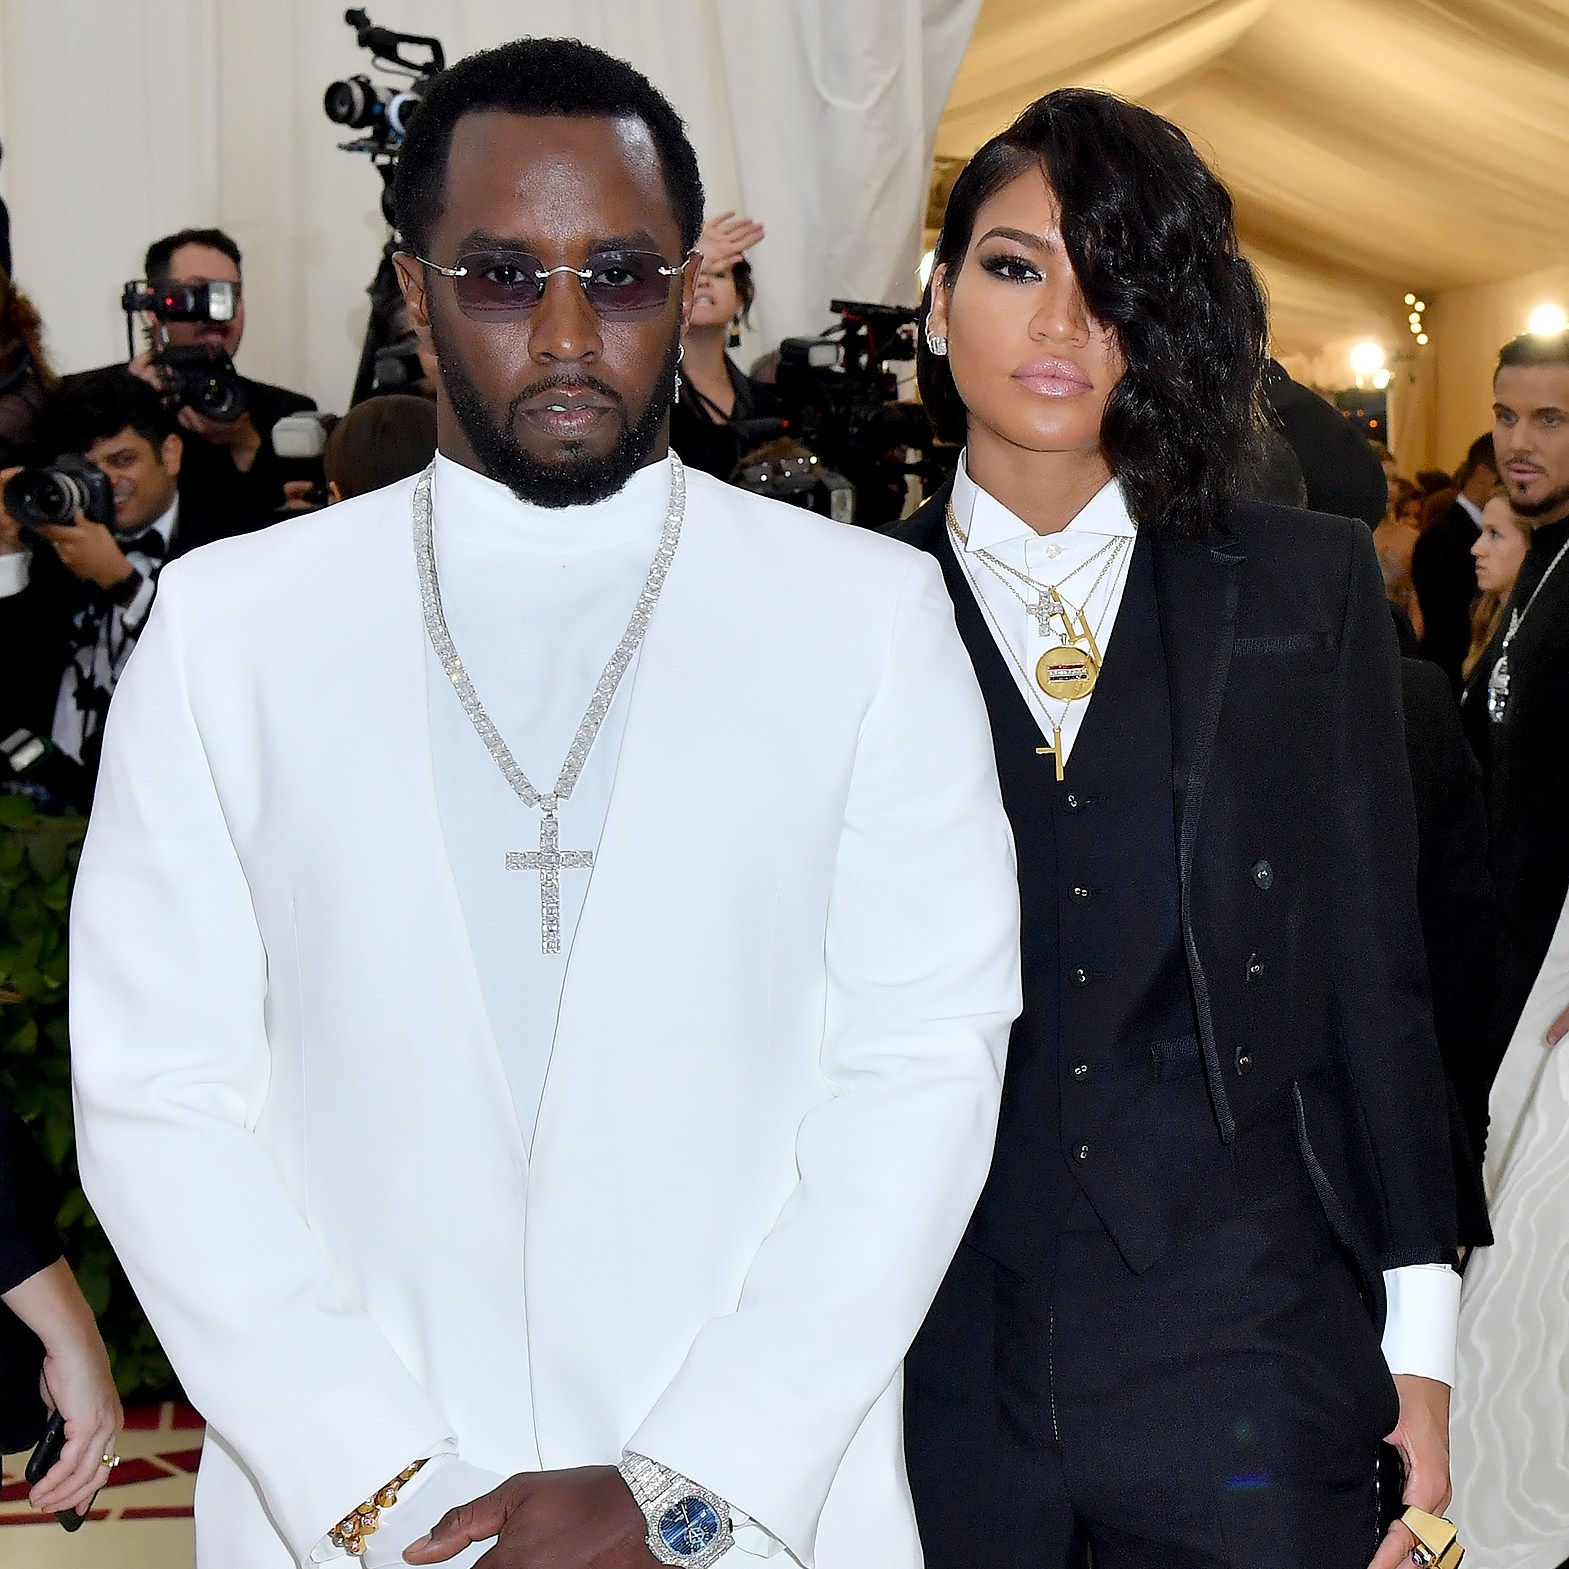 Sean-Combs-and-Cassie-Ventura-reunite